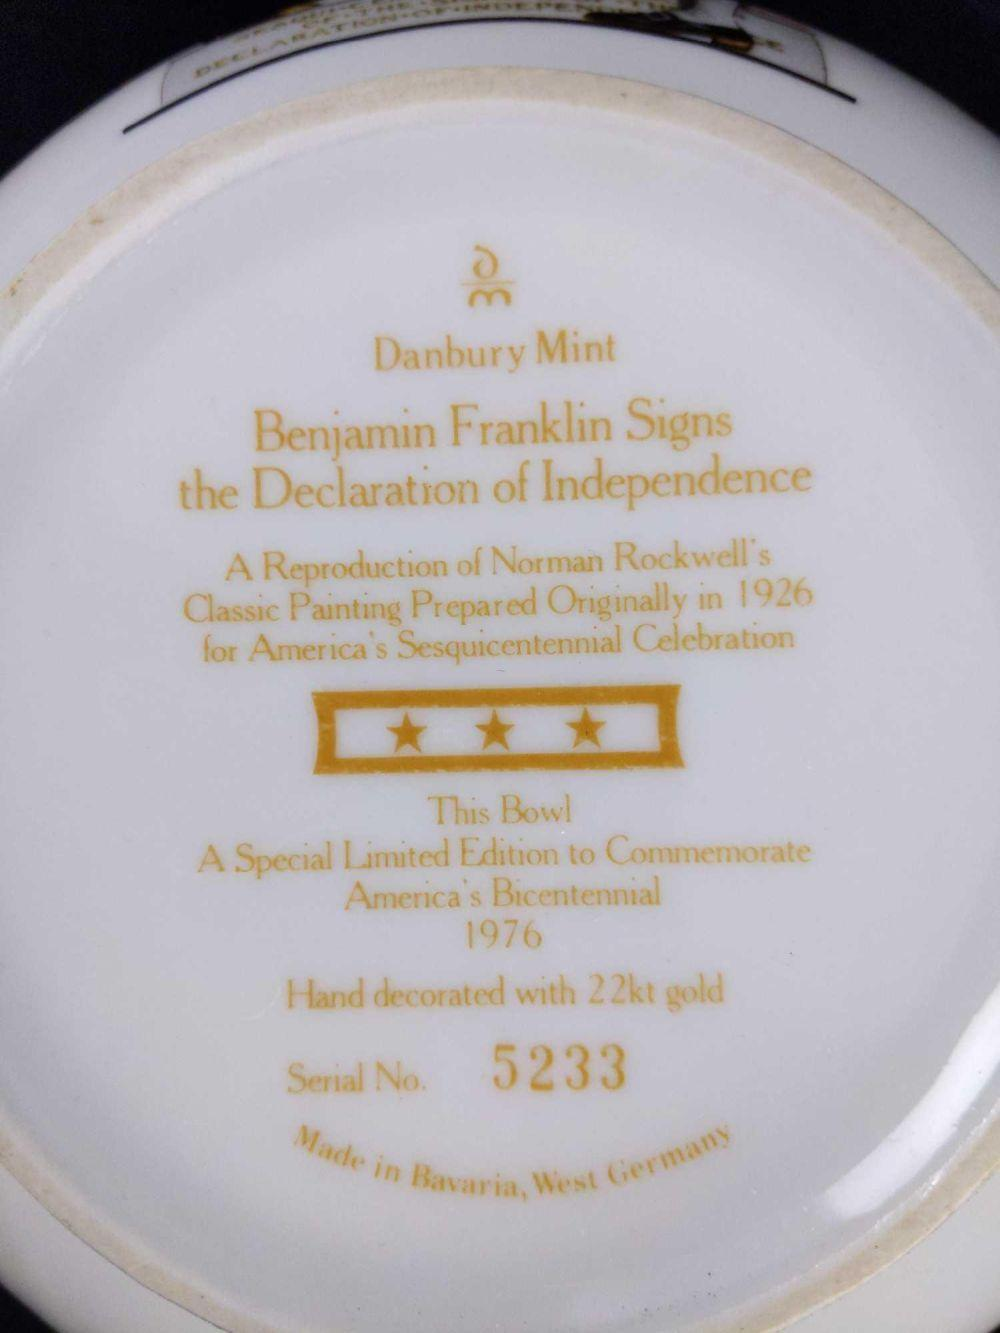 Lot 246: 1976 Danbury Mint Benjamin Franklin Collector Bowl